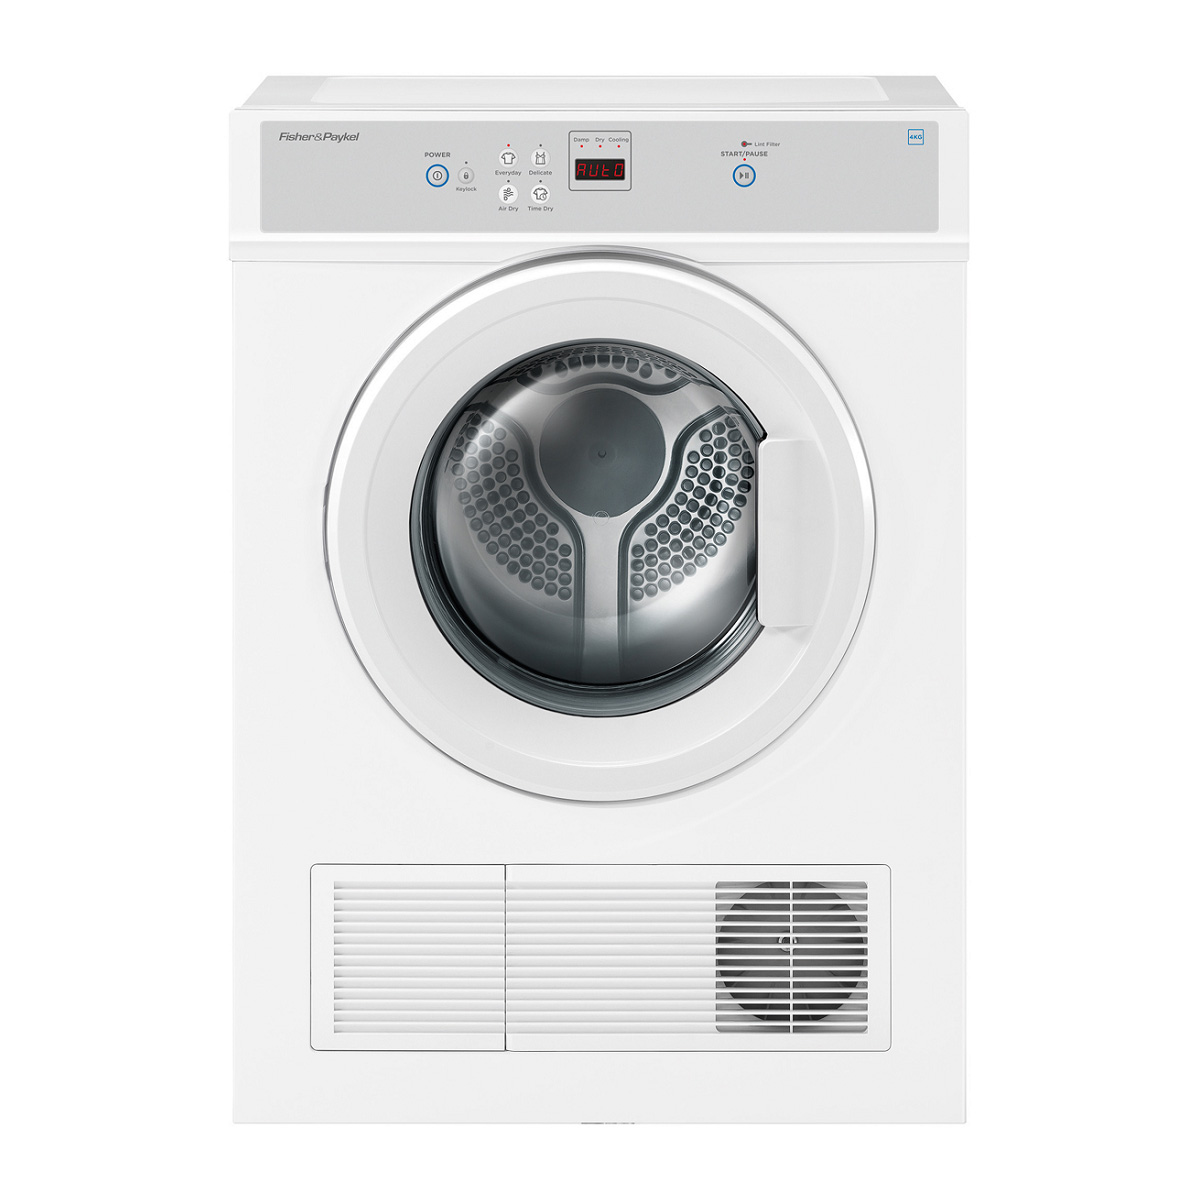 Fisher & Paykel DE4060M1 4kg Vented Dryer